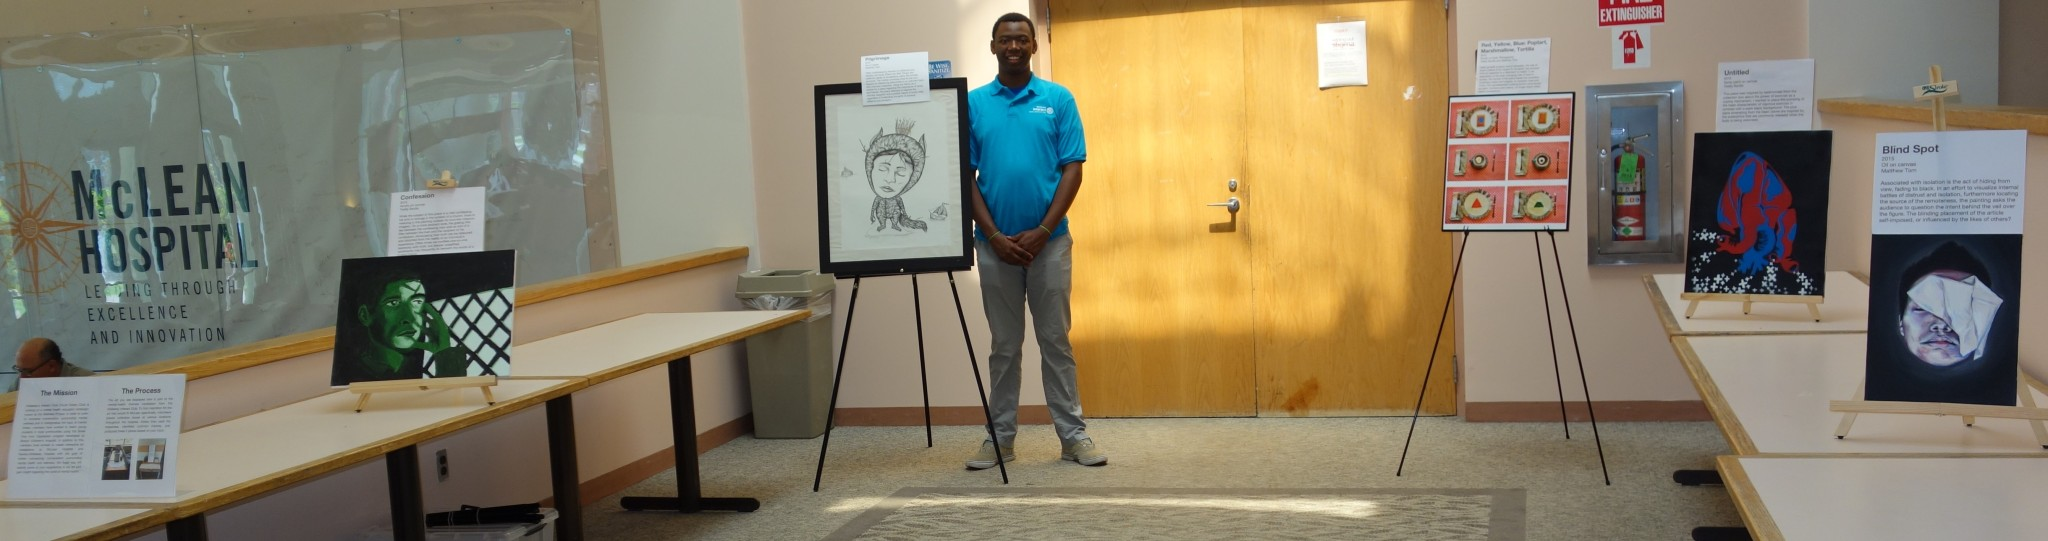 Interact member Joey Kinyanjui presenting art on emotional wellness at McLean Hospital